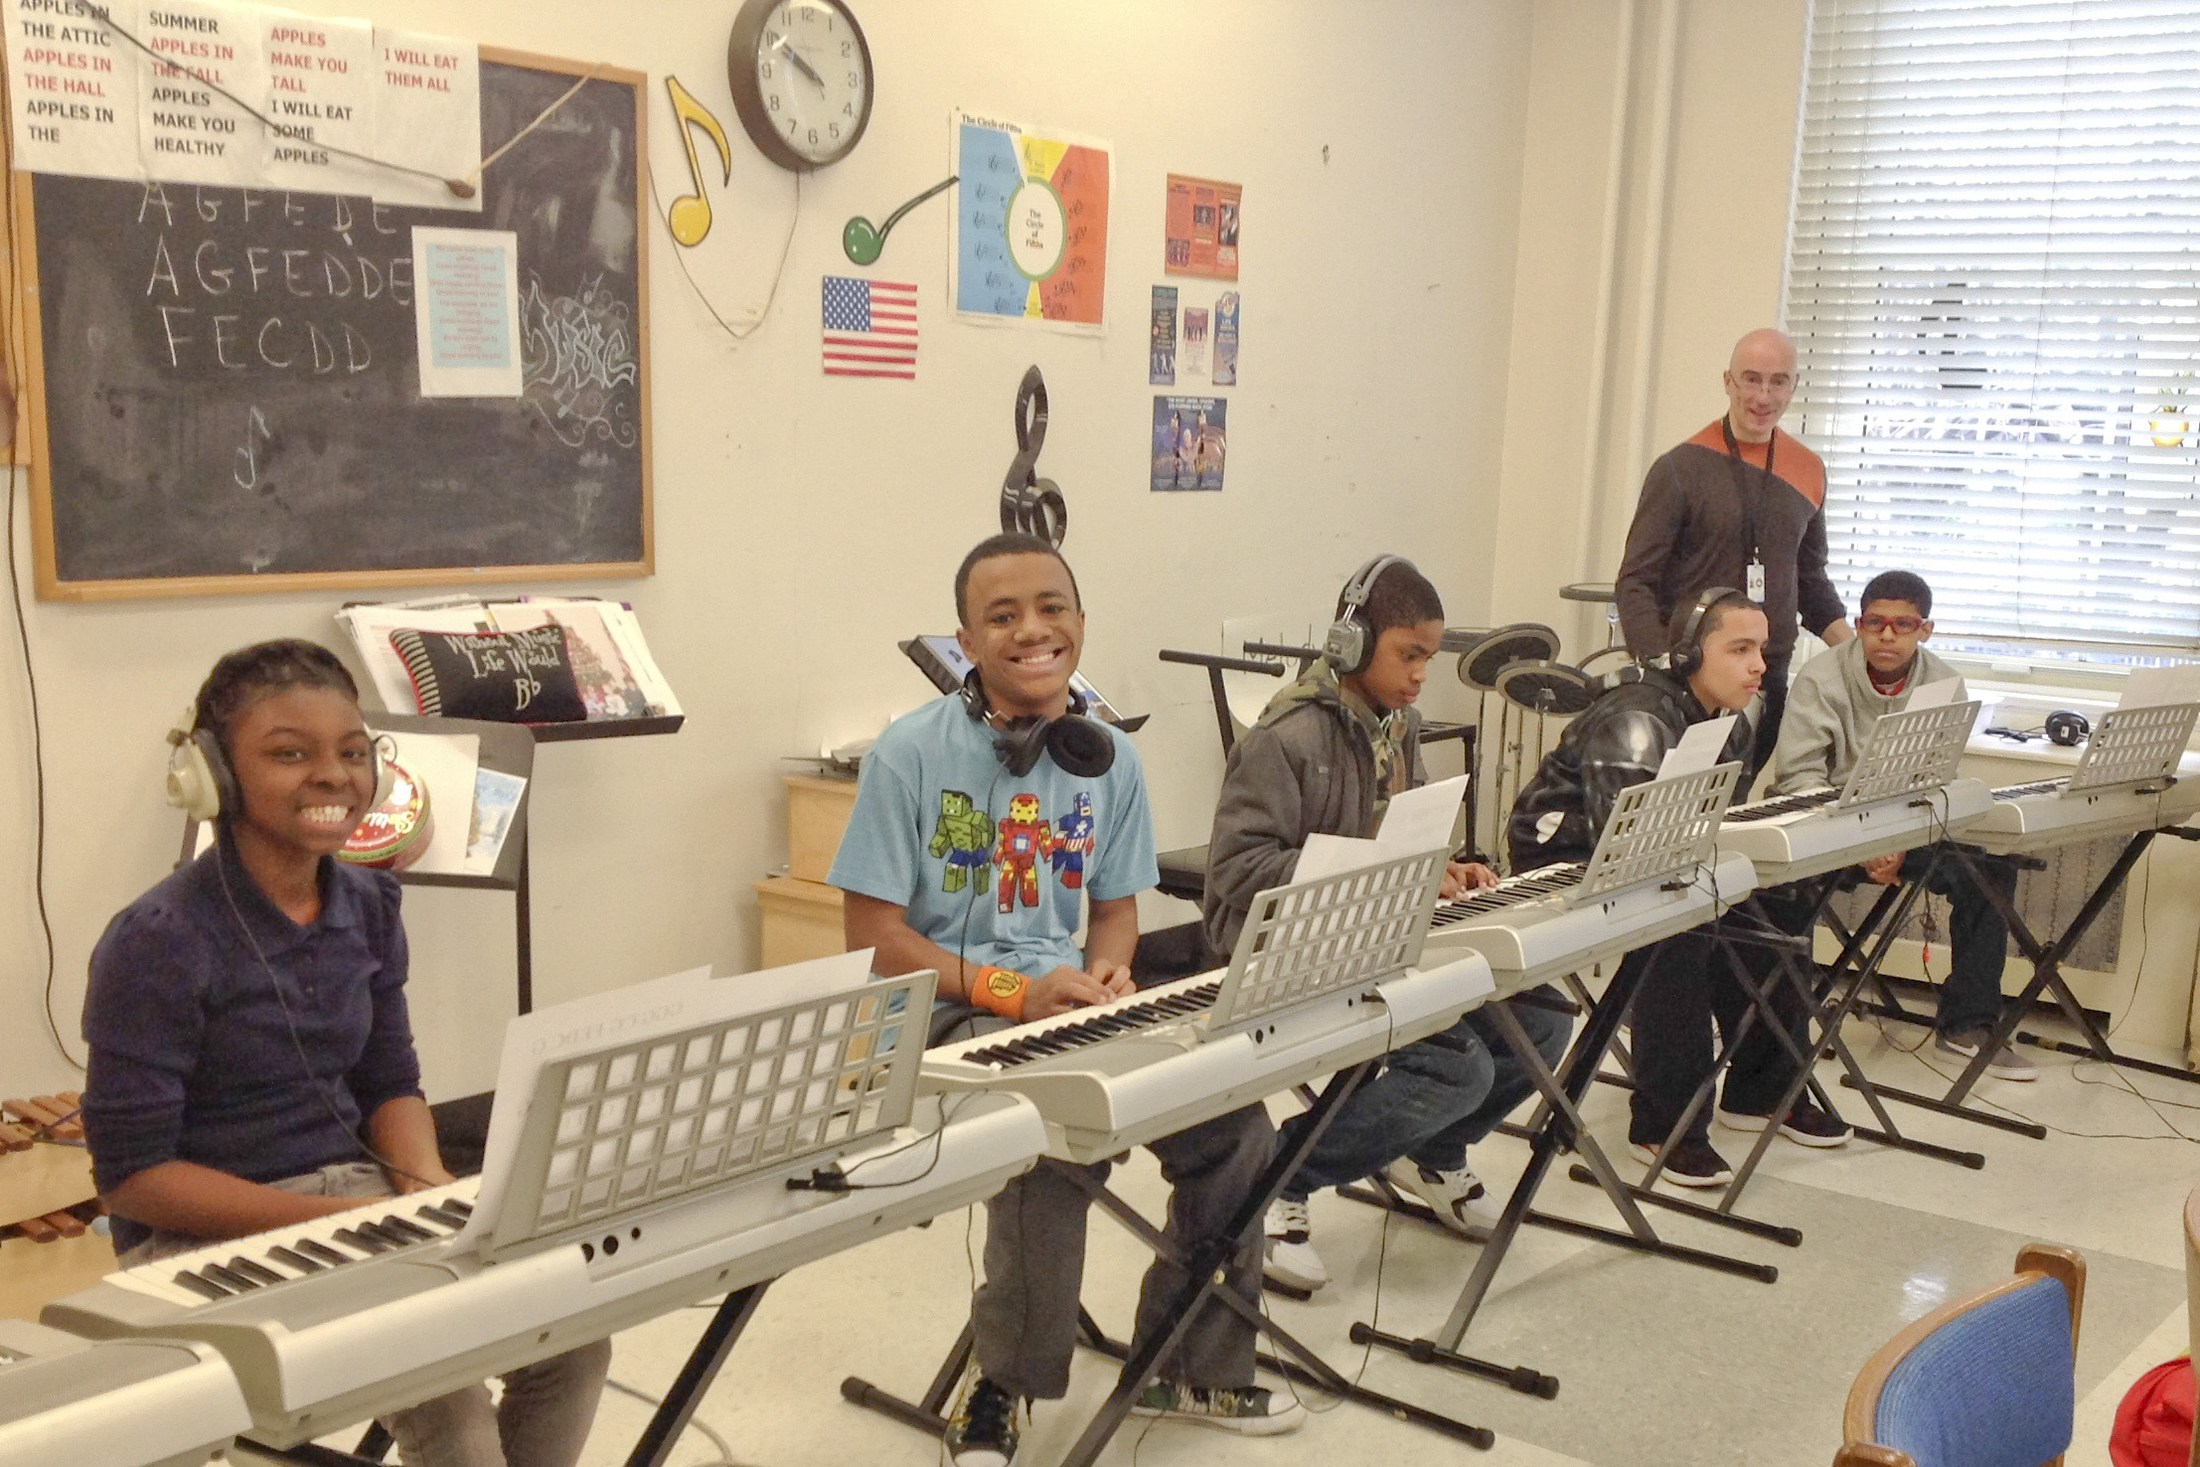 Students on keyboards in the music room